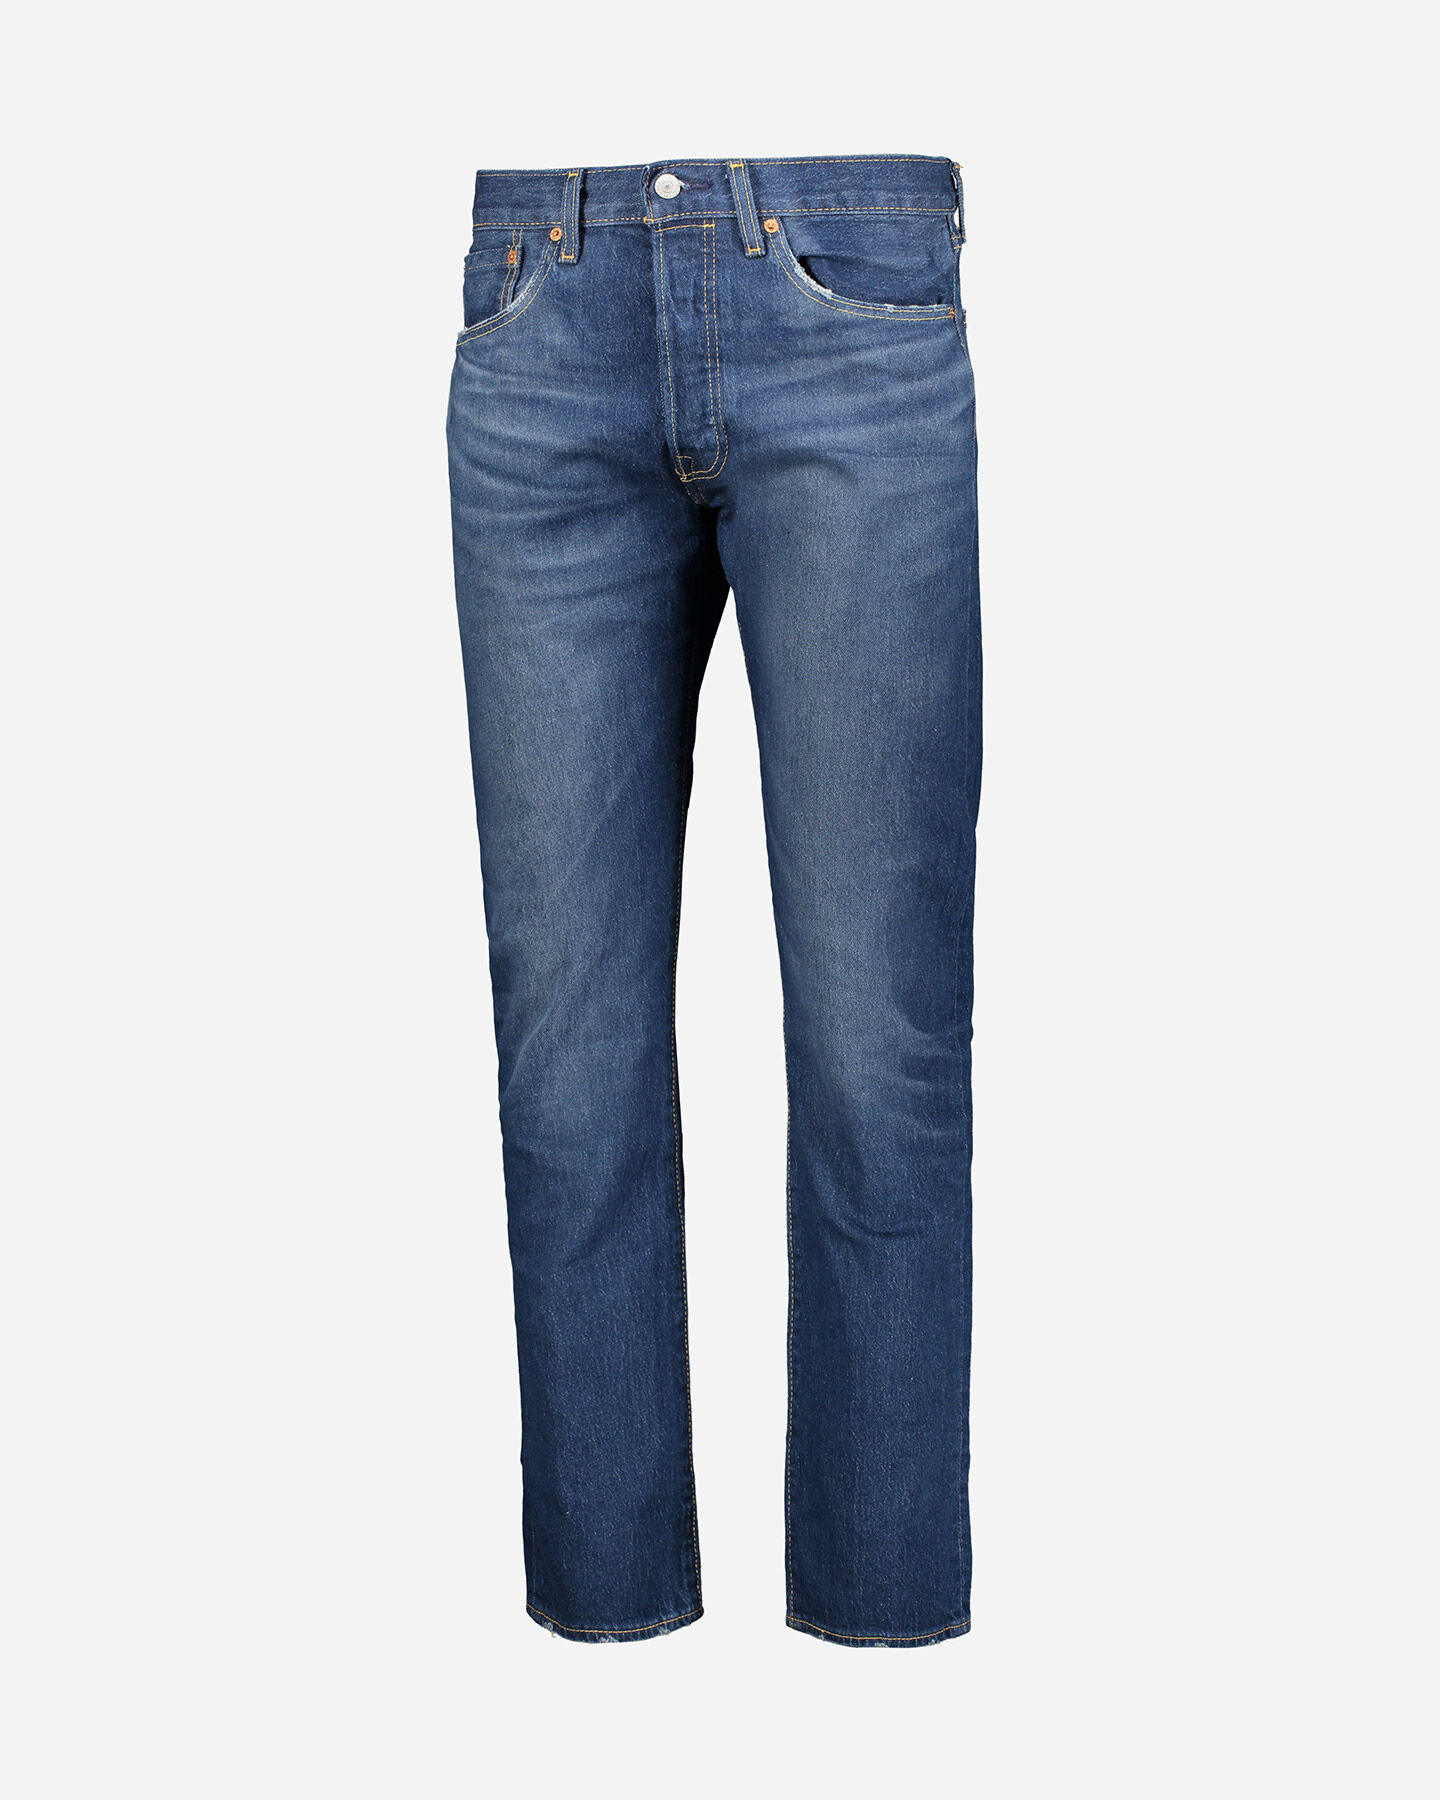 Jeans LEVI'S 501 REGULAR M S4082676 scatto 0